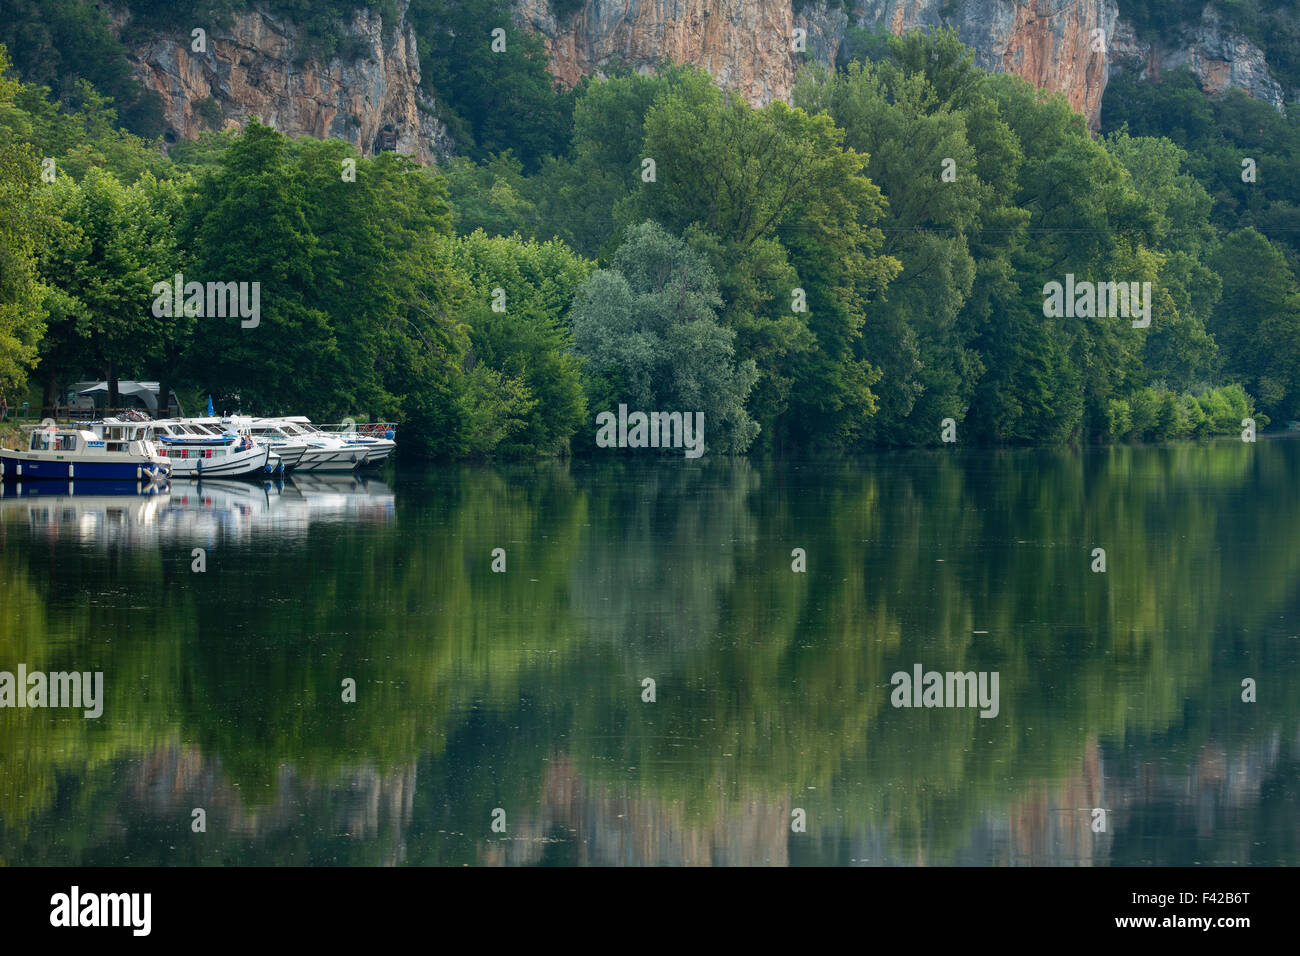 the River Lot at Vers, Quercy, France - Stock Image